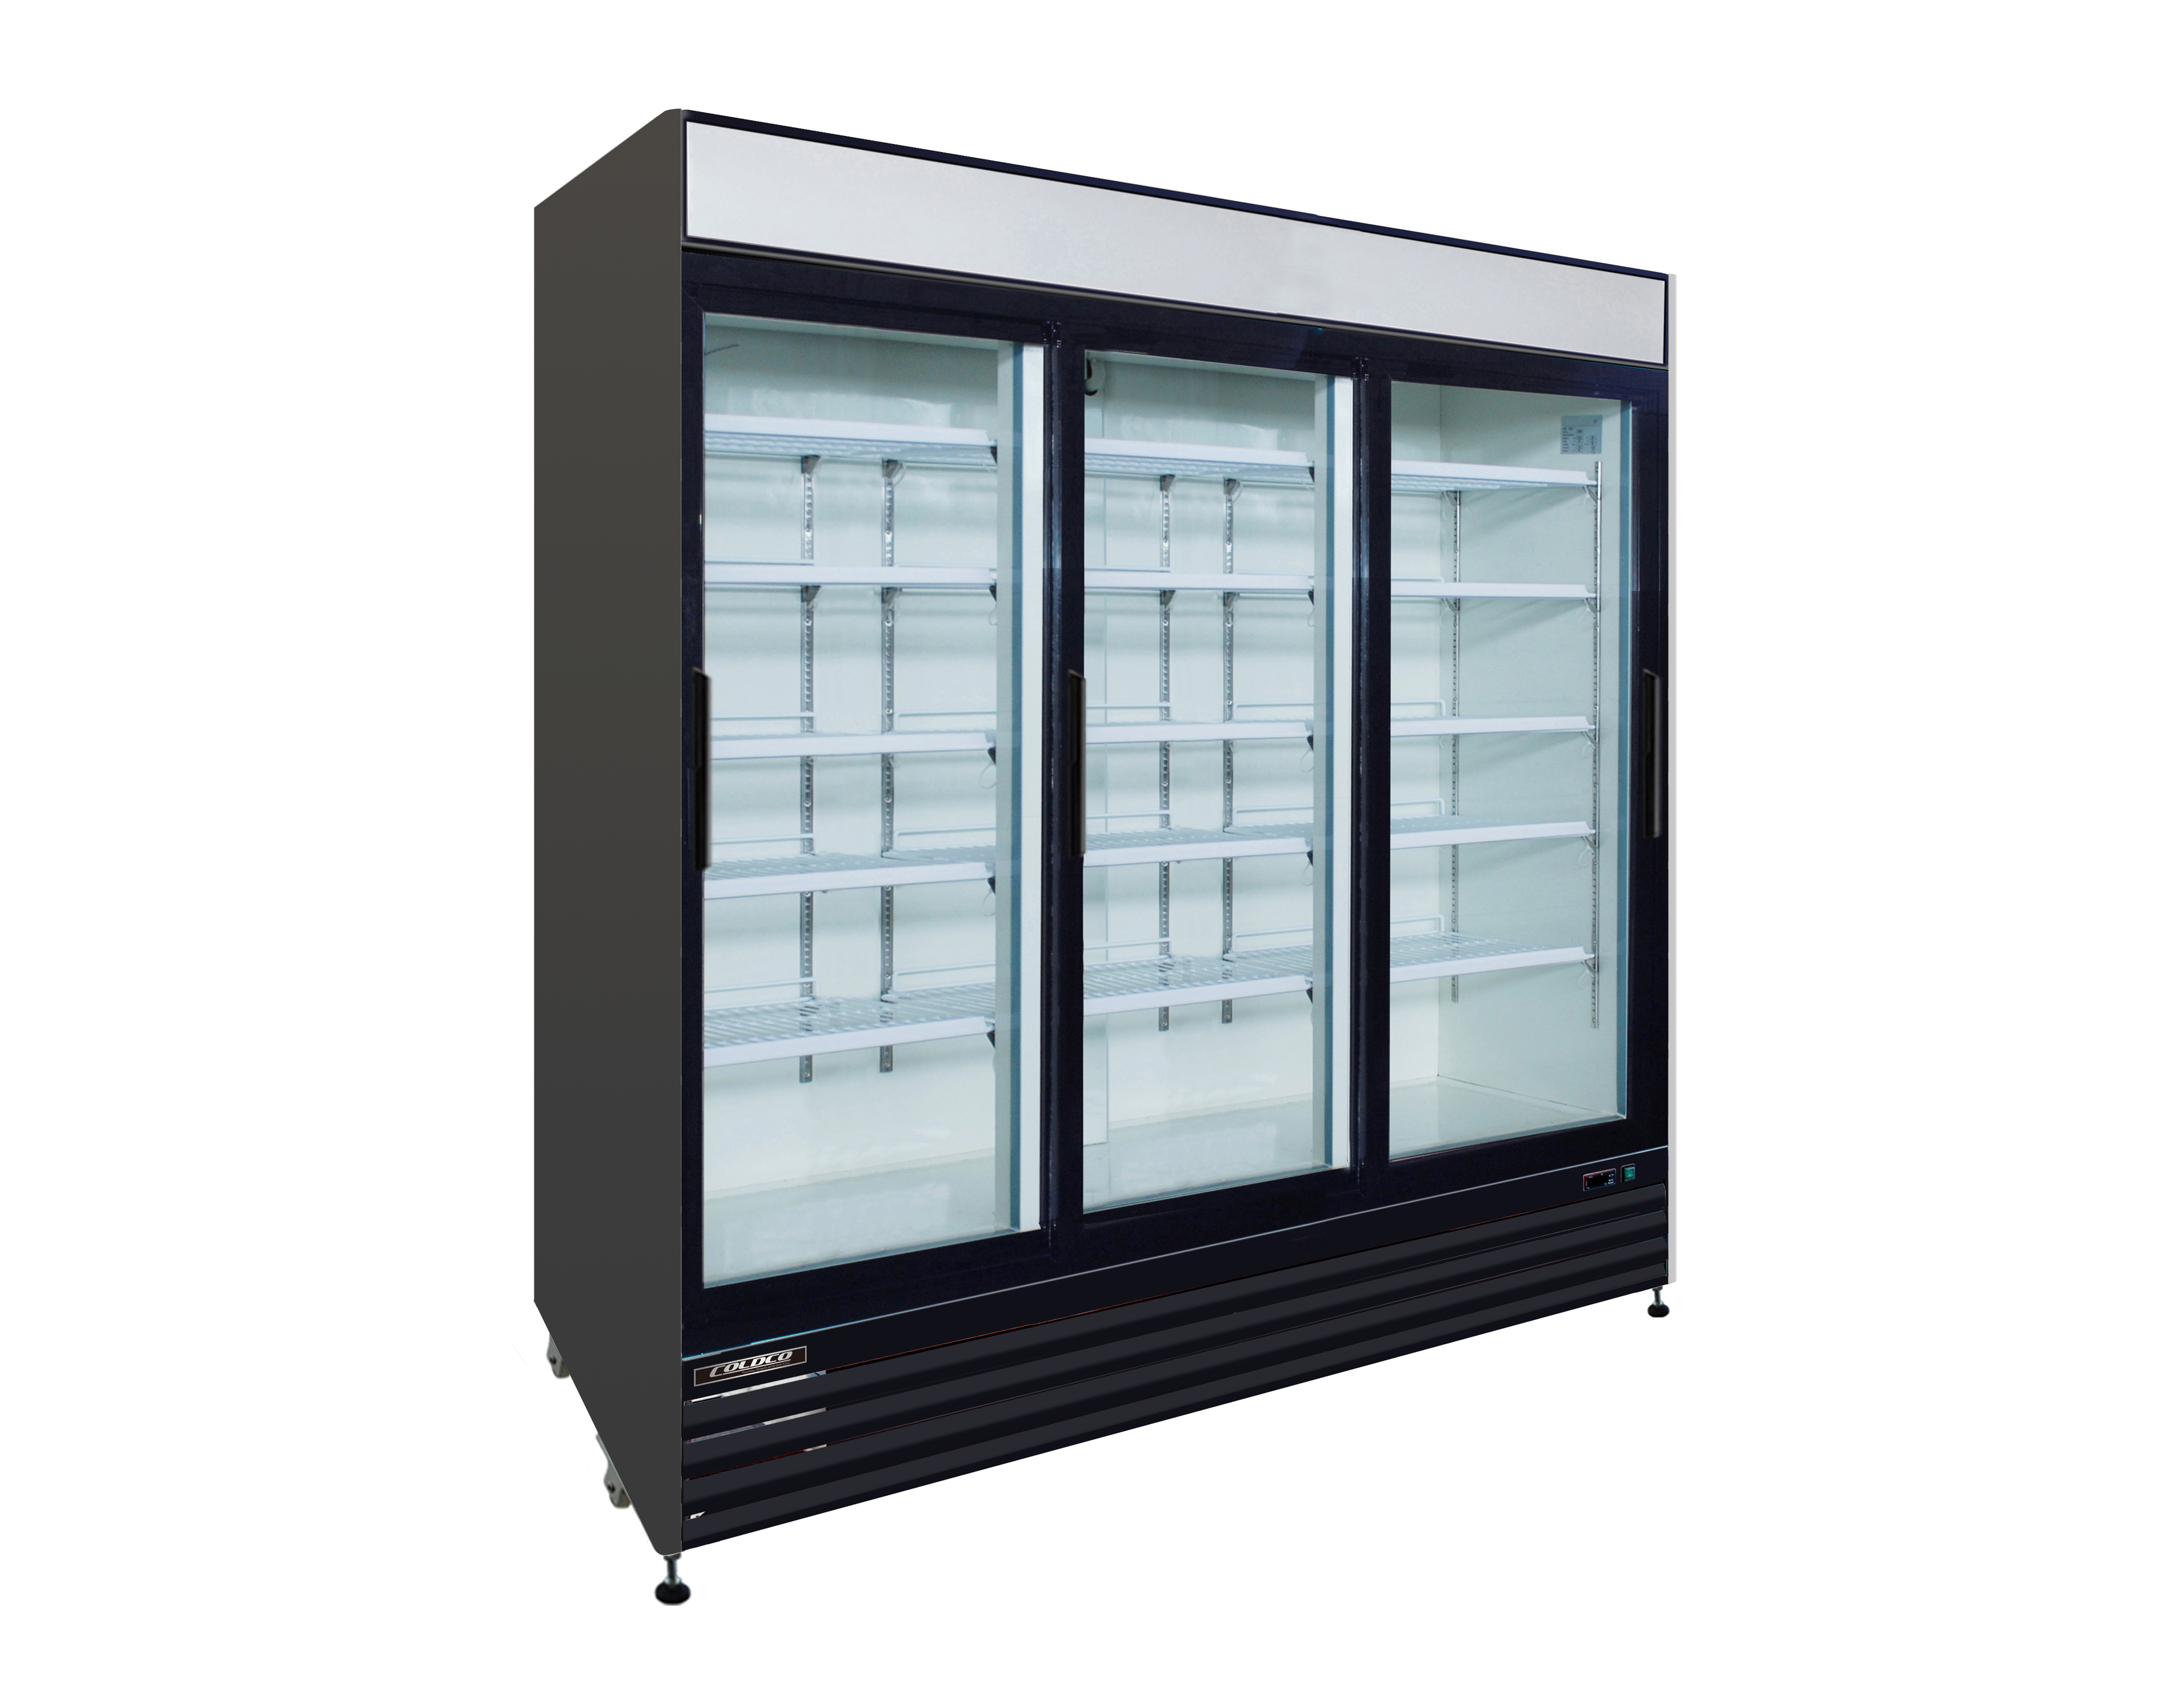 Toronto Refrigeration And Freezer Retailer Of Hussmann